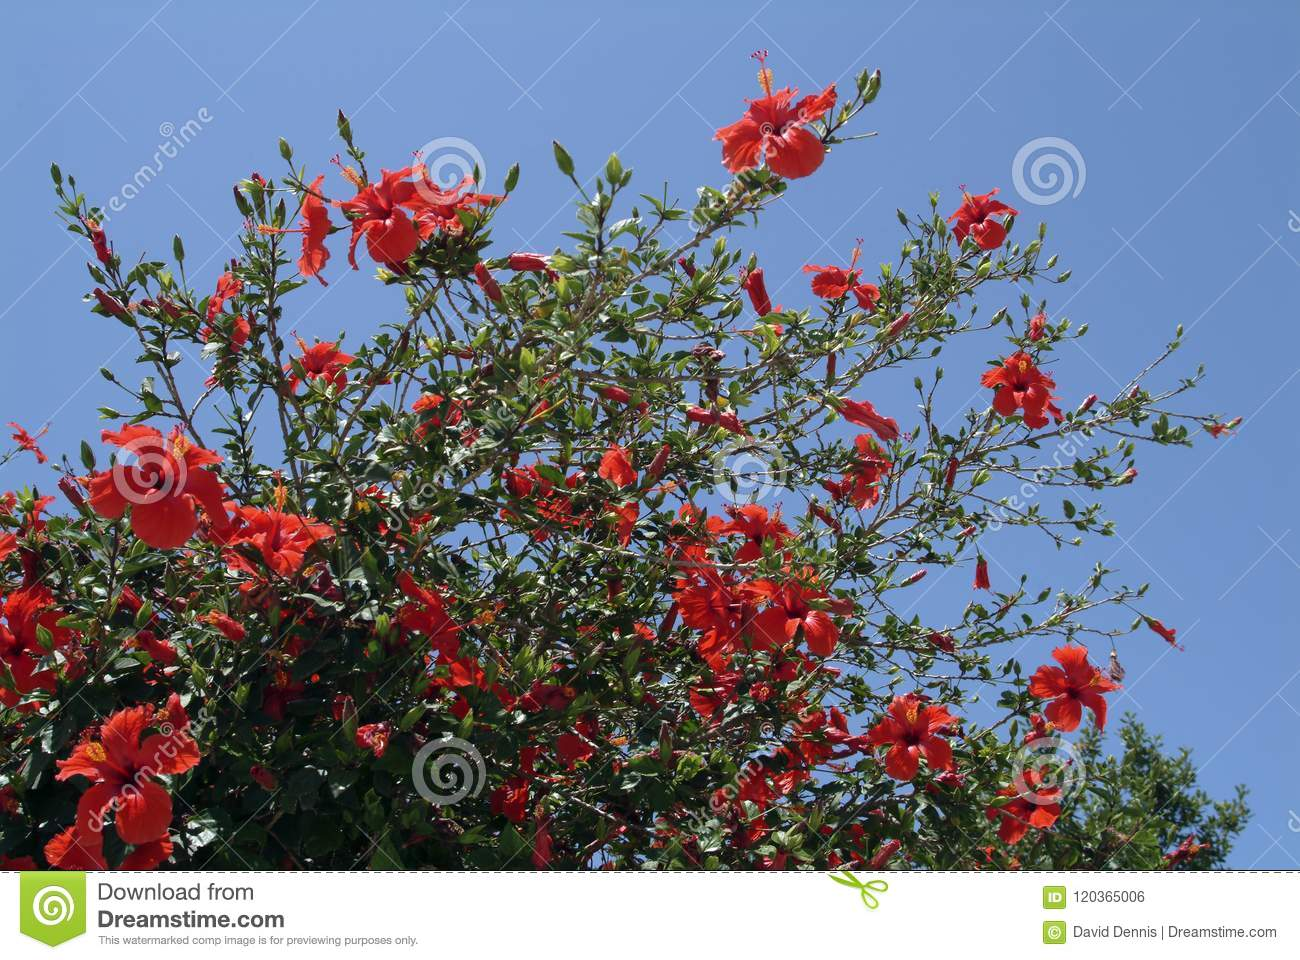 Large Hibiscus Shrub With Red Trumpet Shaped Flowers Stock Photo